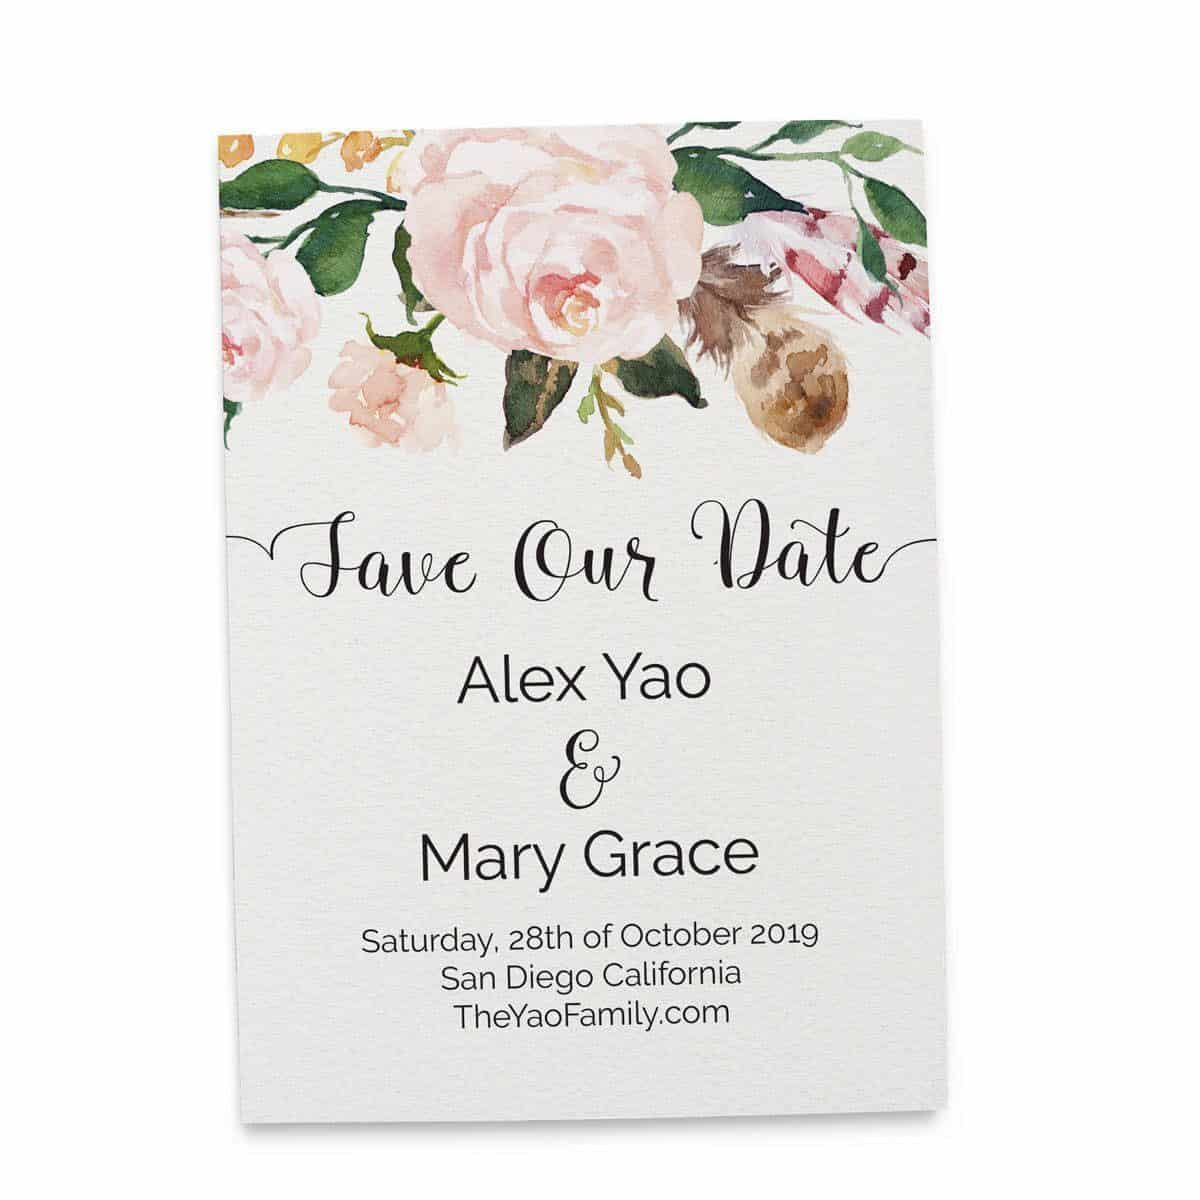 Beau Save The Date Cards, Floral Boho Bohemian Save The Date Wedding Cards